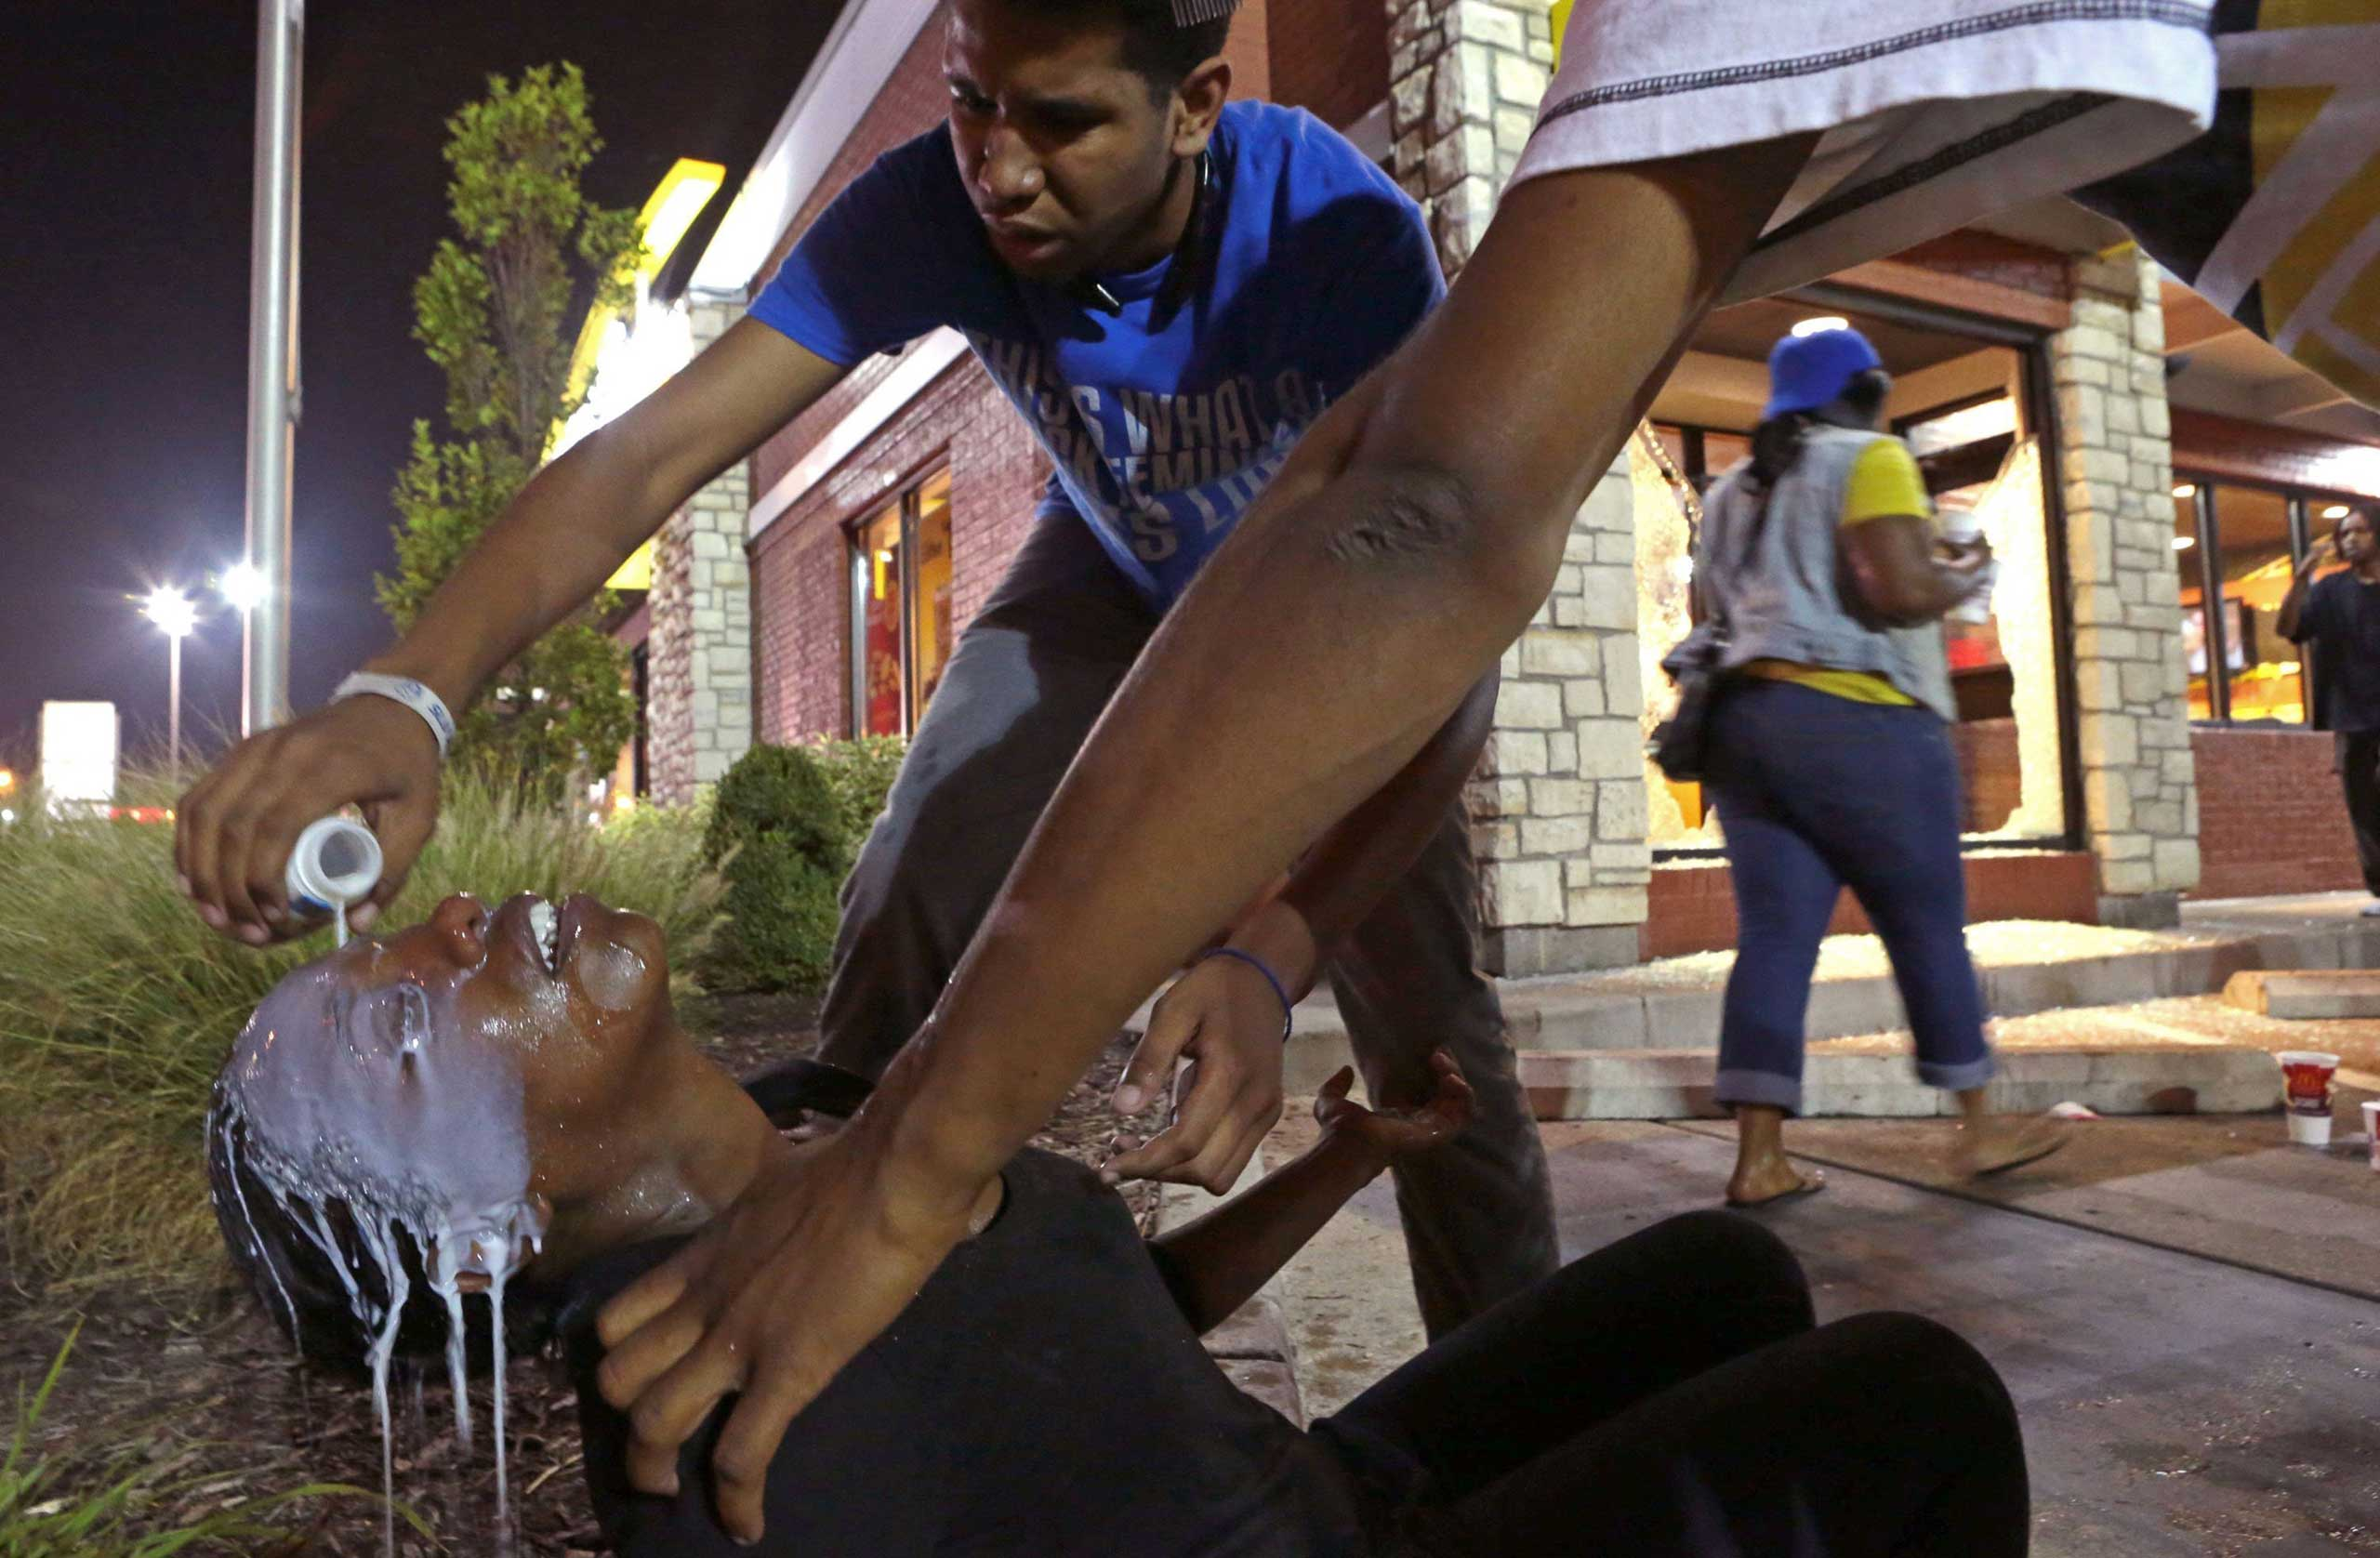 Aug. 17, 2014. Protesters help Cassandra Roberts, who was hit by tear gas on Sunday in Ferguson, Mo. They had broken into the McDonald's to get milk to wash the gas out of her eyes.  We thought it could be a peaceful night,  said Roberts, who was marching in Ferguson for the first time.  What the hell is going on in this world?